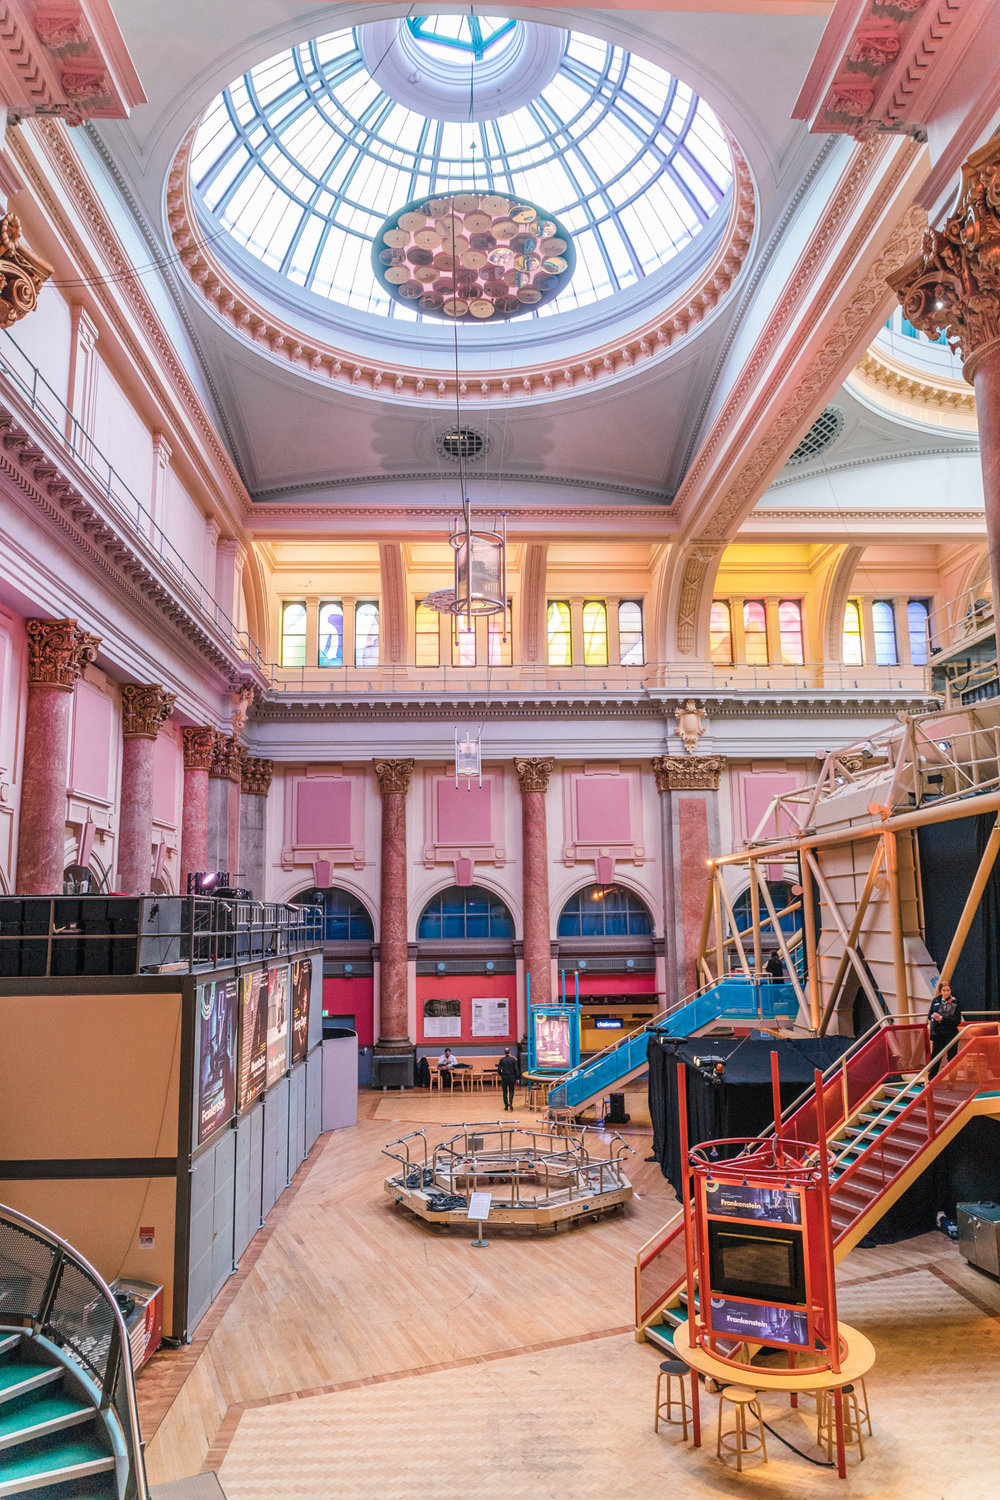 The pink marble of the Royal Exchange Theatre in Manchester // 11 INSTAGRAM-WORTHY PHOTO SPOTS IN MANCHESTER, ENGLAND // www.readysetjetset.net #readysetjetset #manchester #england #uk #unitedkingdom #cityguide #travel